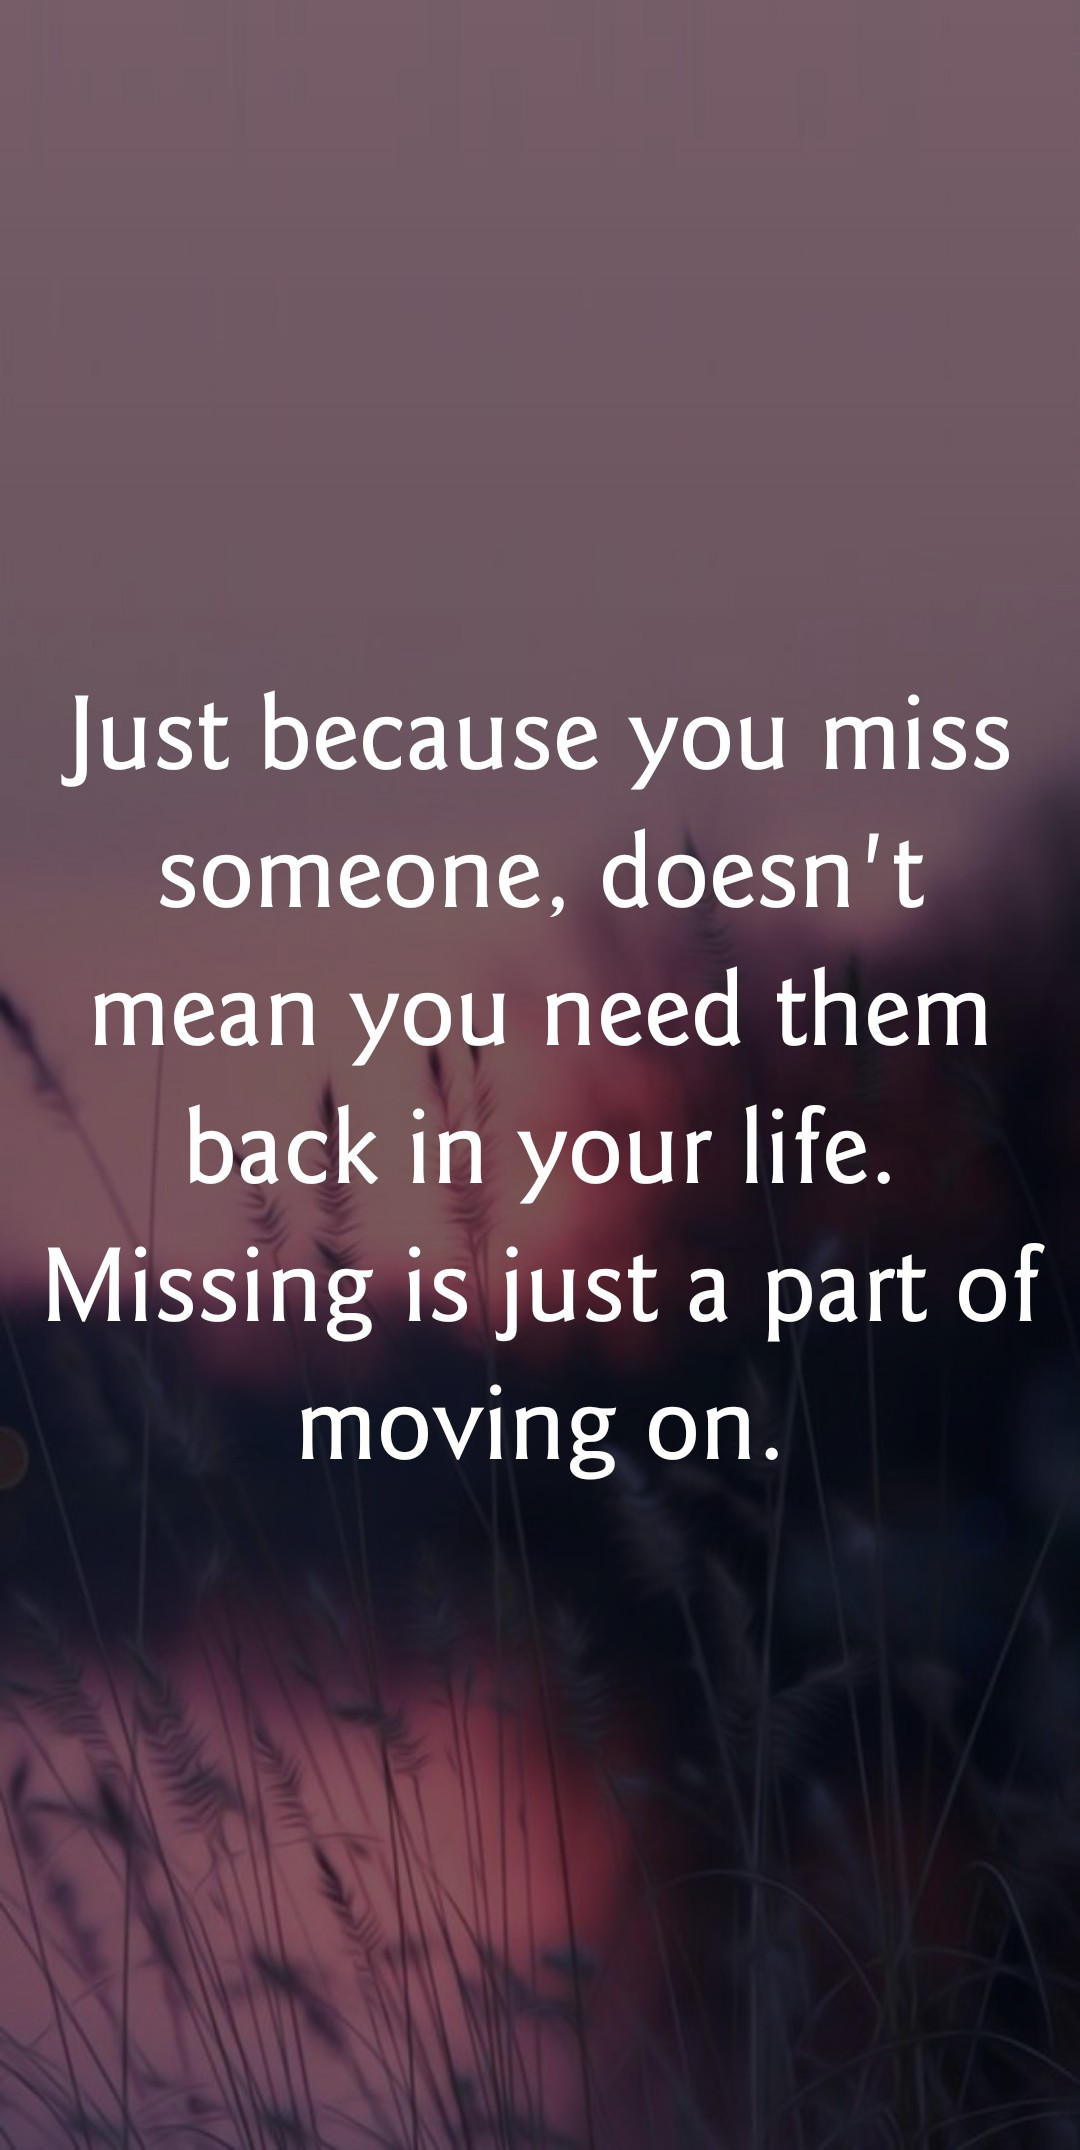 [Image] Move on!